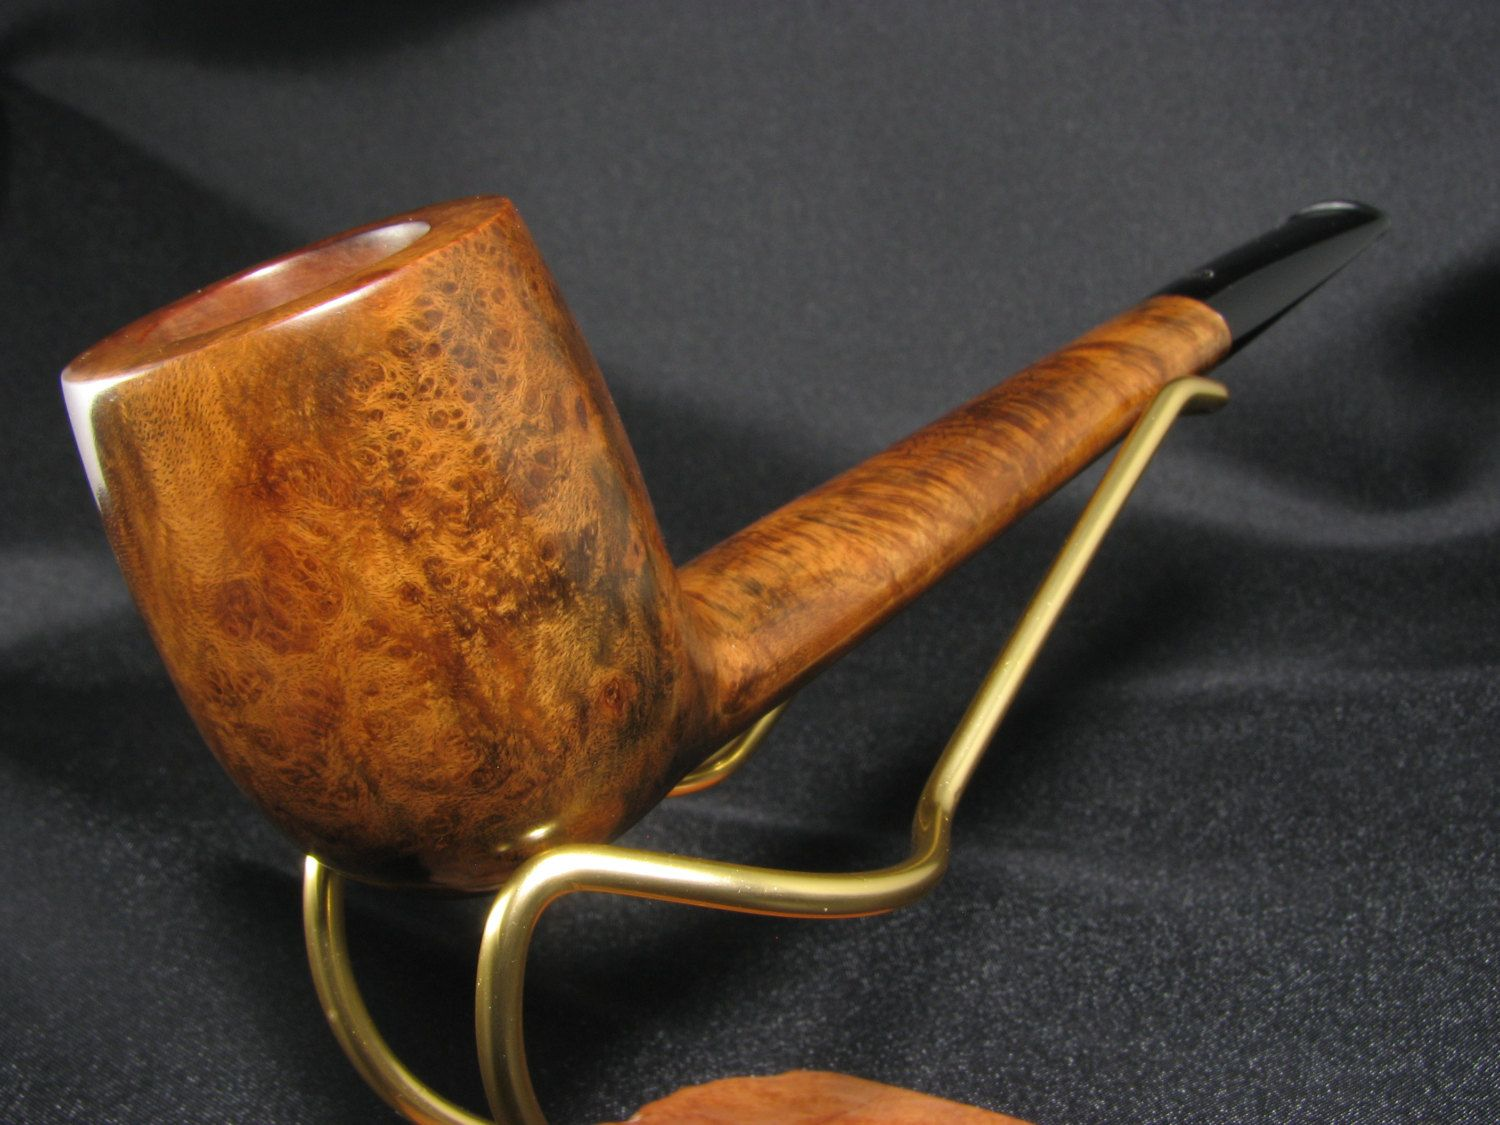 Four Shillings (Orlik?) London made canadian pipe - elegant and lightly smoked by & Four Shillings (Orlik?) London made canadian pipe - elegant and ...